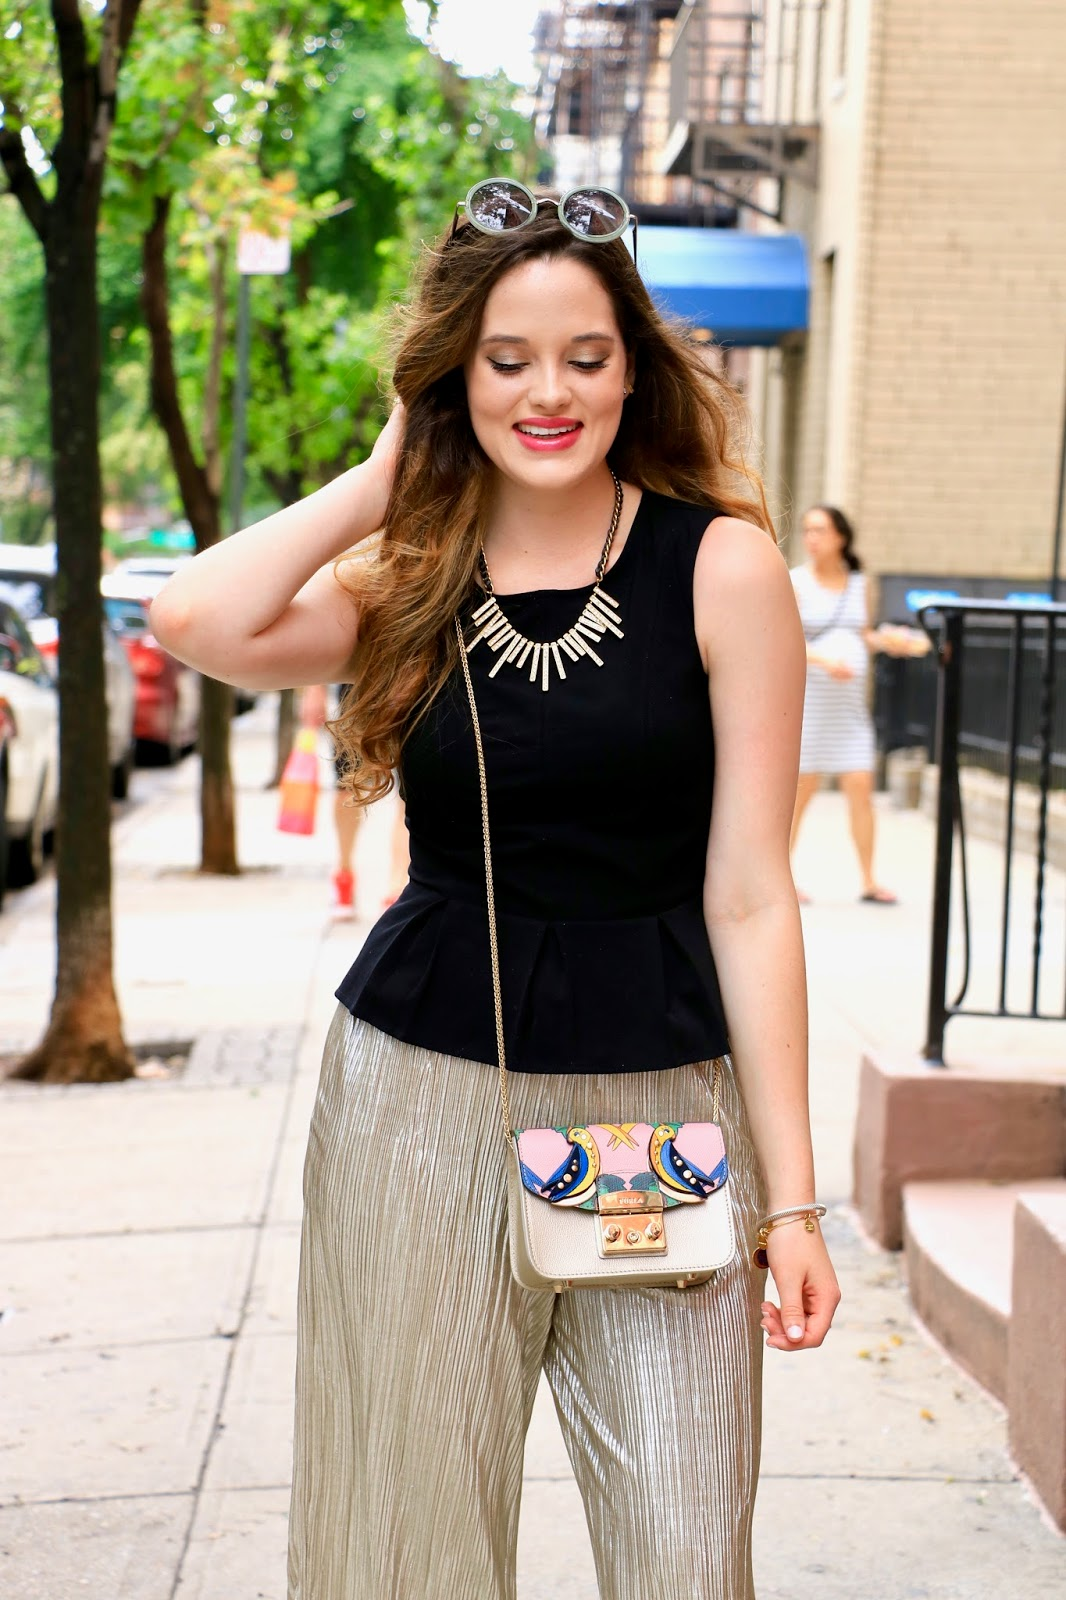 nyc fashion blogger Kathleen Harper showing off her summer street style